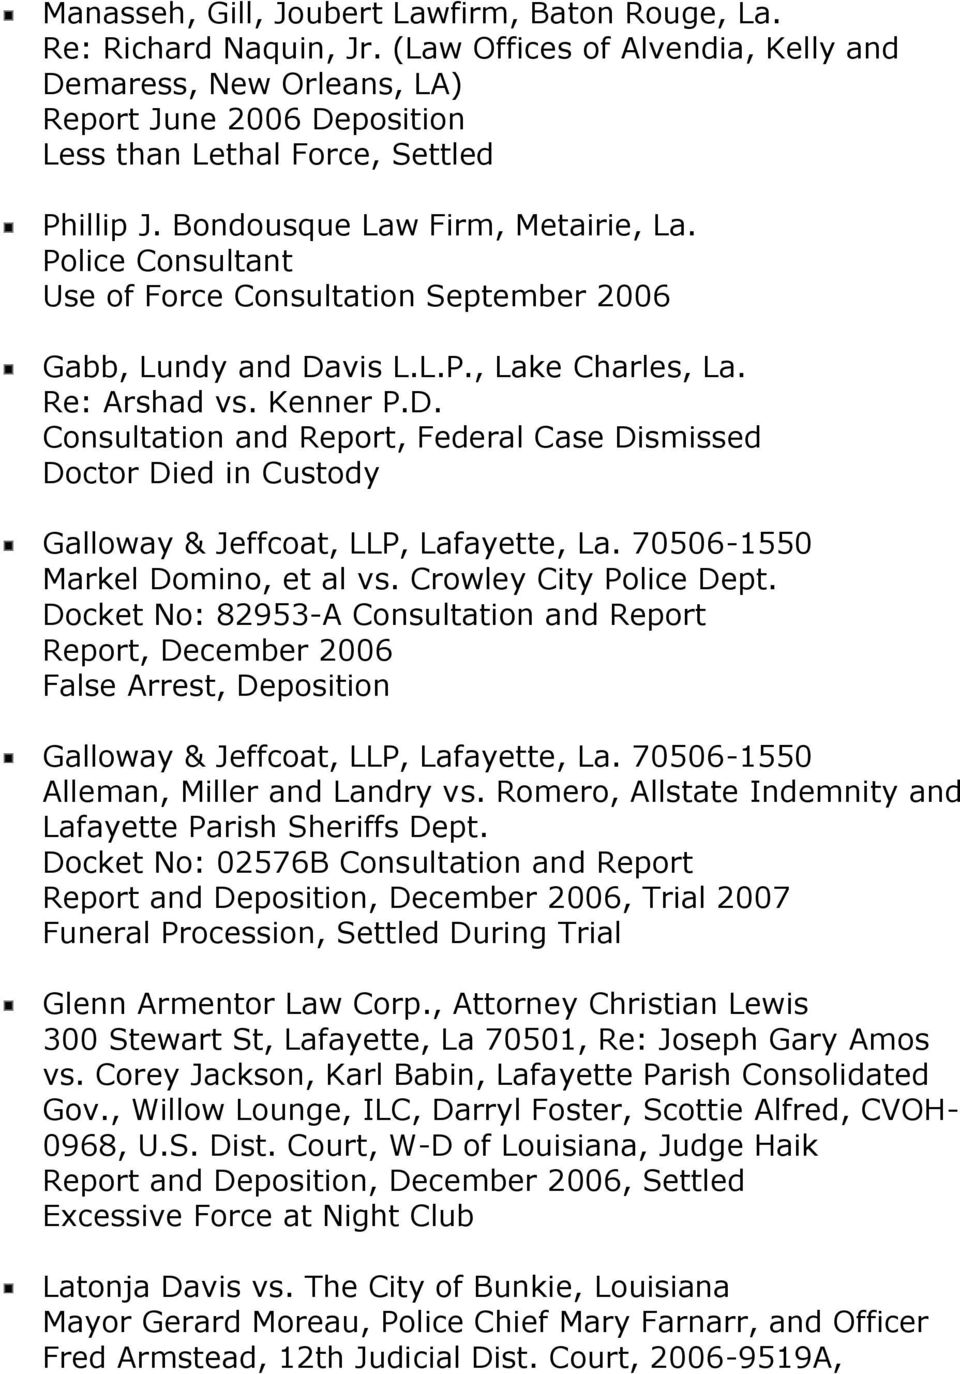 Police Consultant Use of Force Consultation September 2006 Gabb, Lundy and Davis L.L.P., Lake Charles, La. Re: Arshad vs. Kenner P.D. Consultation and Report, Federal Case Dismissed Doctor Died in Custody Galloway & Jeffcoat, LLP, Lafayette, La.